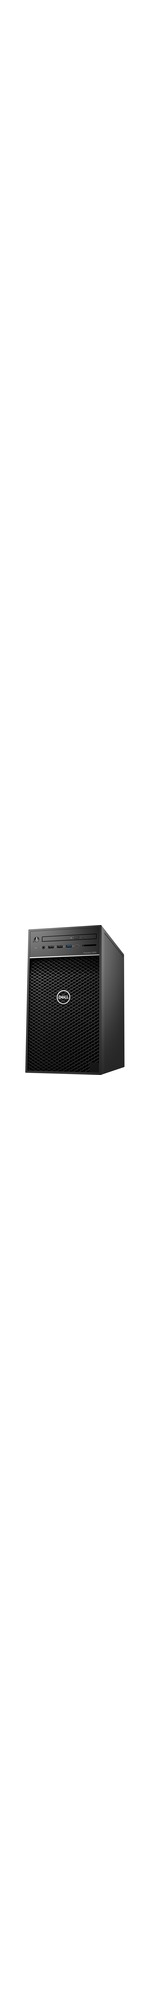 Dell Precision 3000 3630 Workstation - Core i5 i5-9500 - 8 GB RAM - 1 TB HDD - Mini-tower - Black - Windows 10 Pro 64-bitIntel UHD Graphics 630 - DVD-Writer - Serial